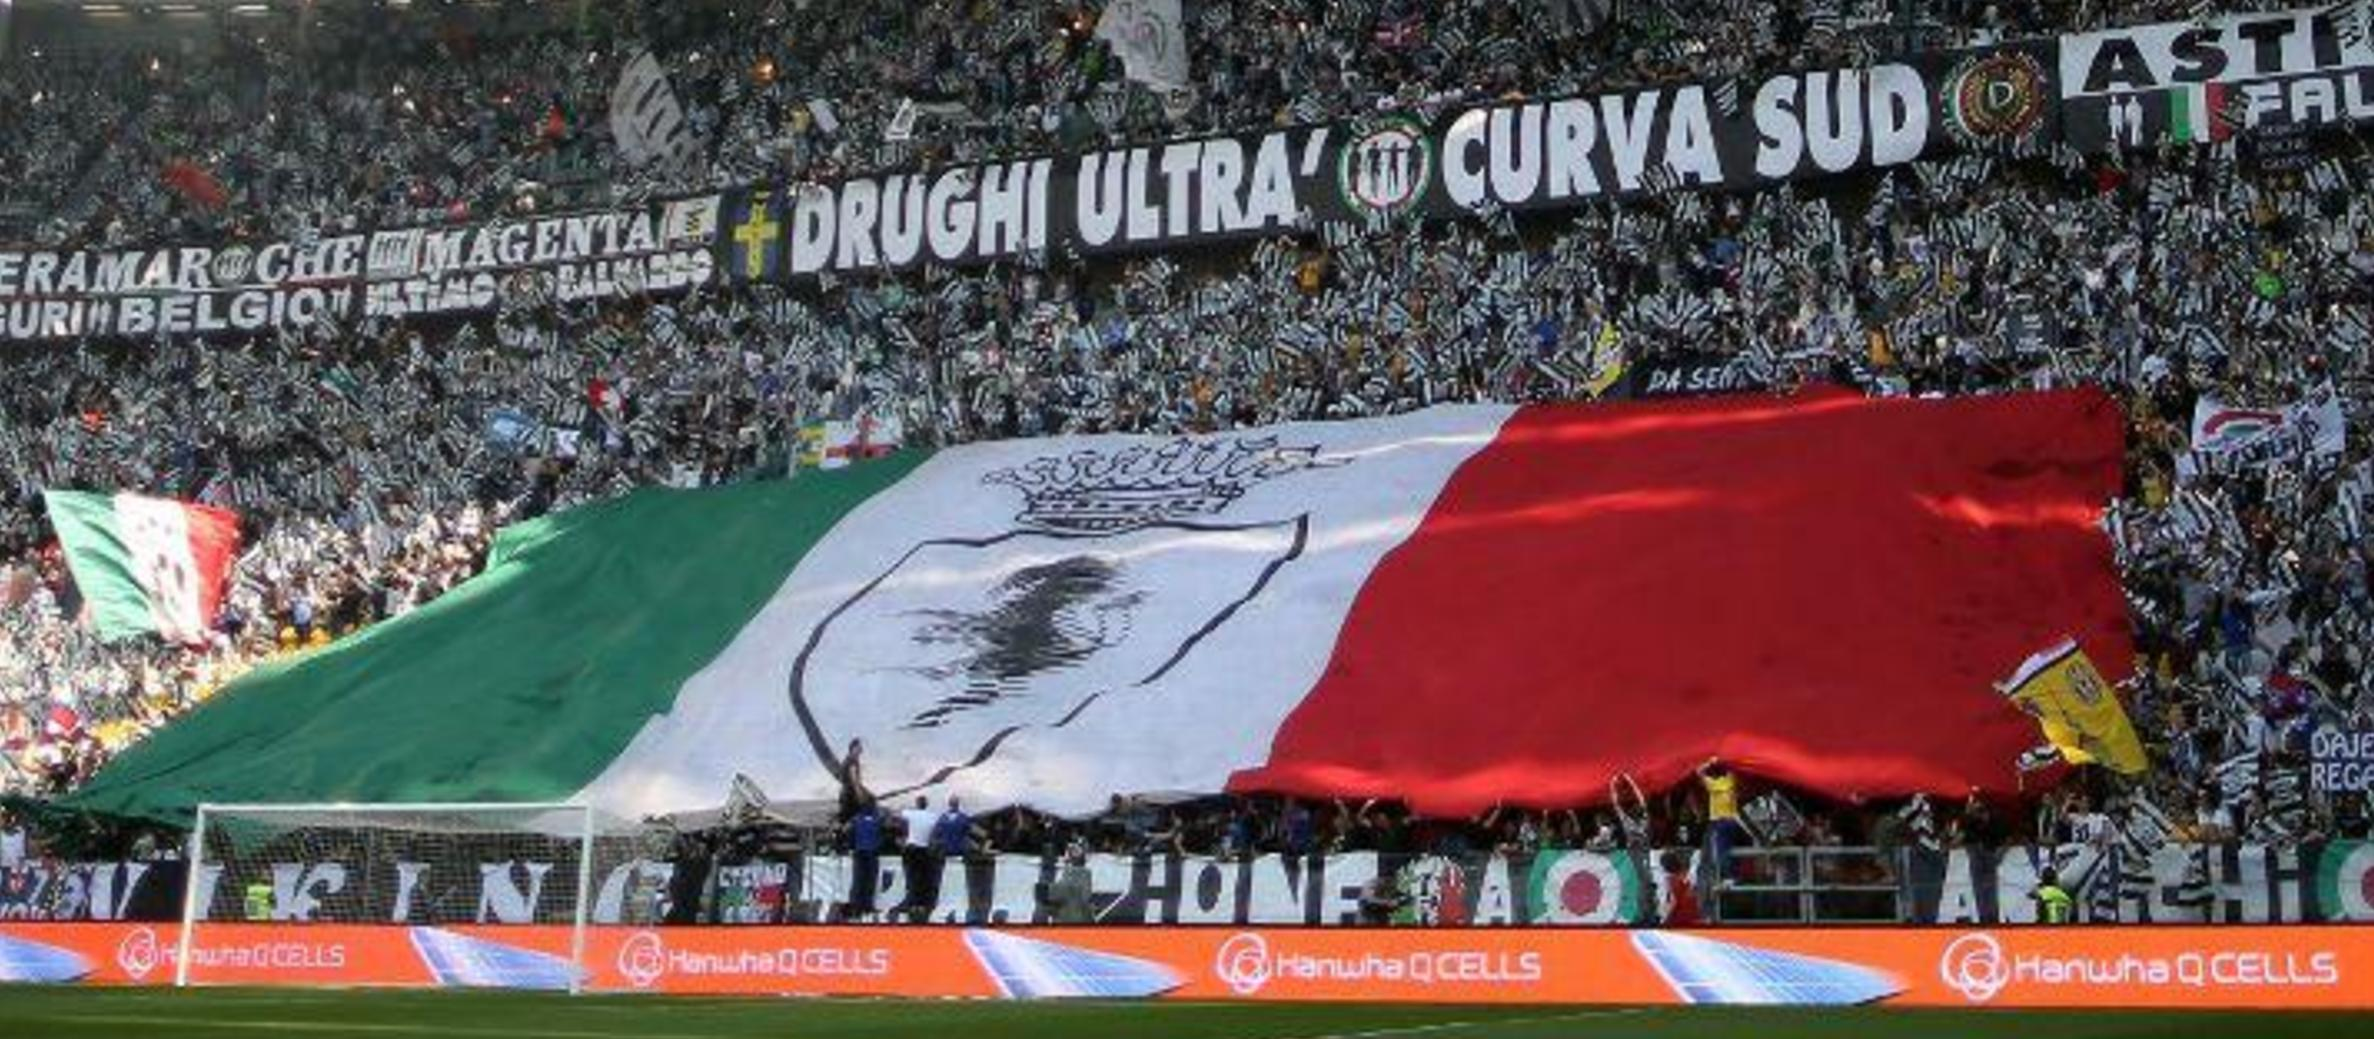 Italian football team Juventus punished for anti-Semitic chants of fans